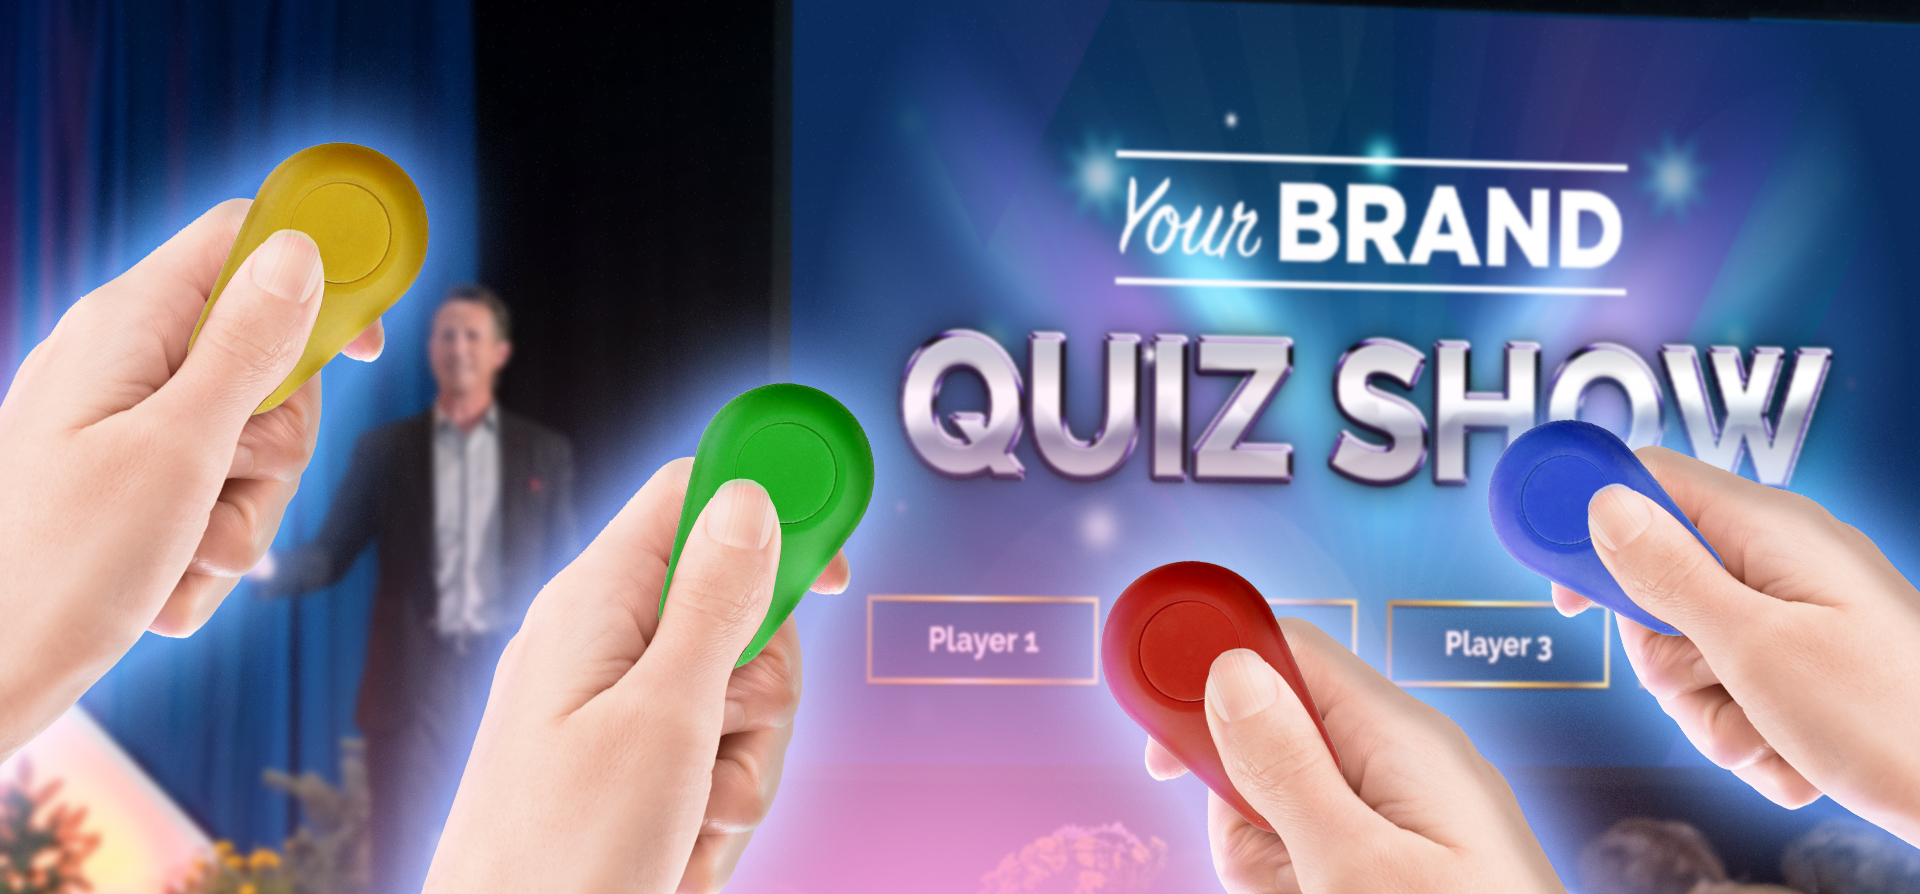 customisable_activation_game_developer_sydney_quiz_show_bluetooth_buzzer_ios_screen_multiplayer_5